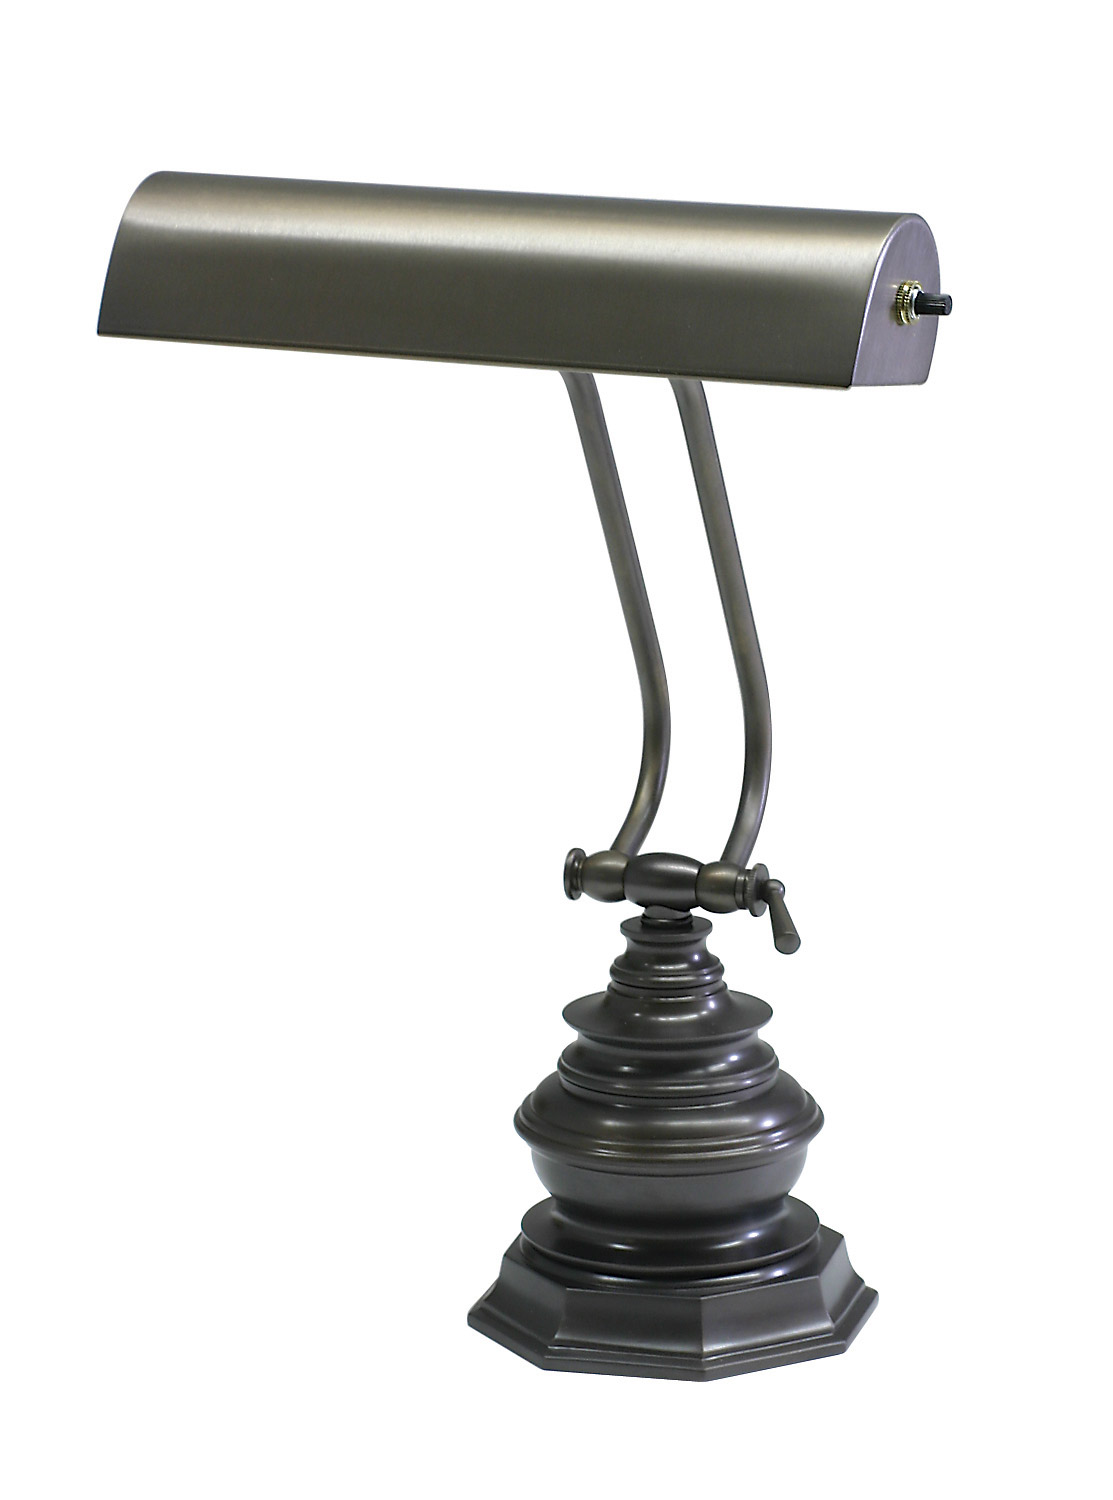 home lamps table lamps piano lamps house of troy p10 111 mb. Black Bedroom Furniture Sets. Home Design Ideas